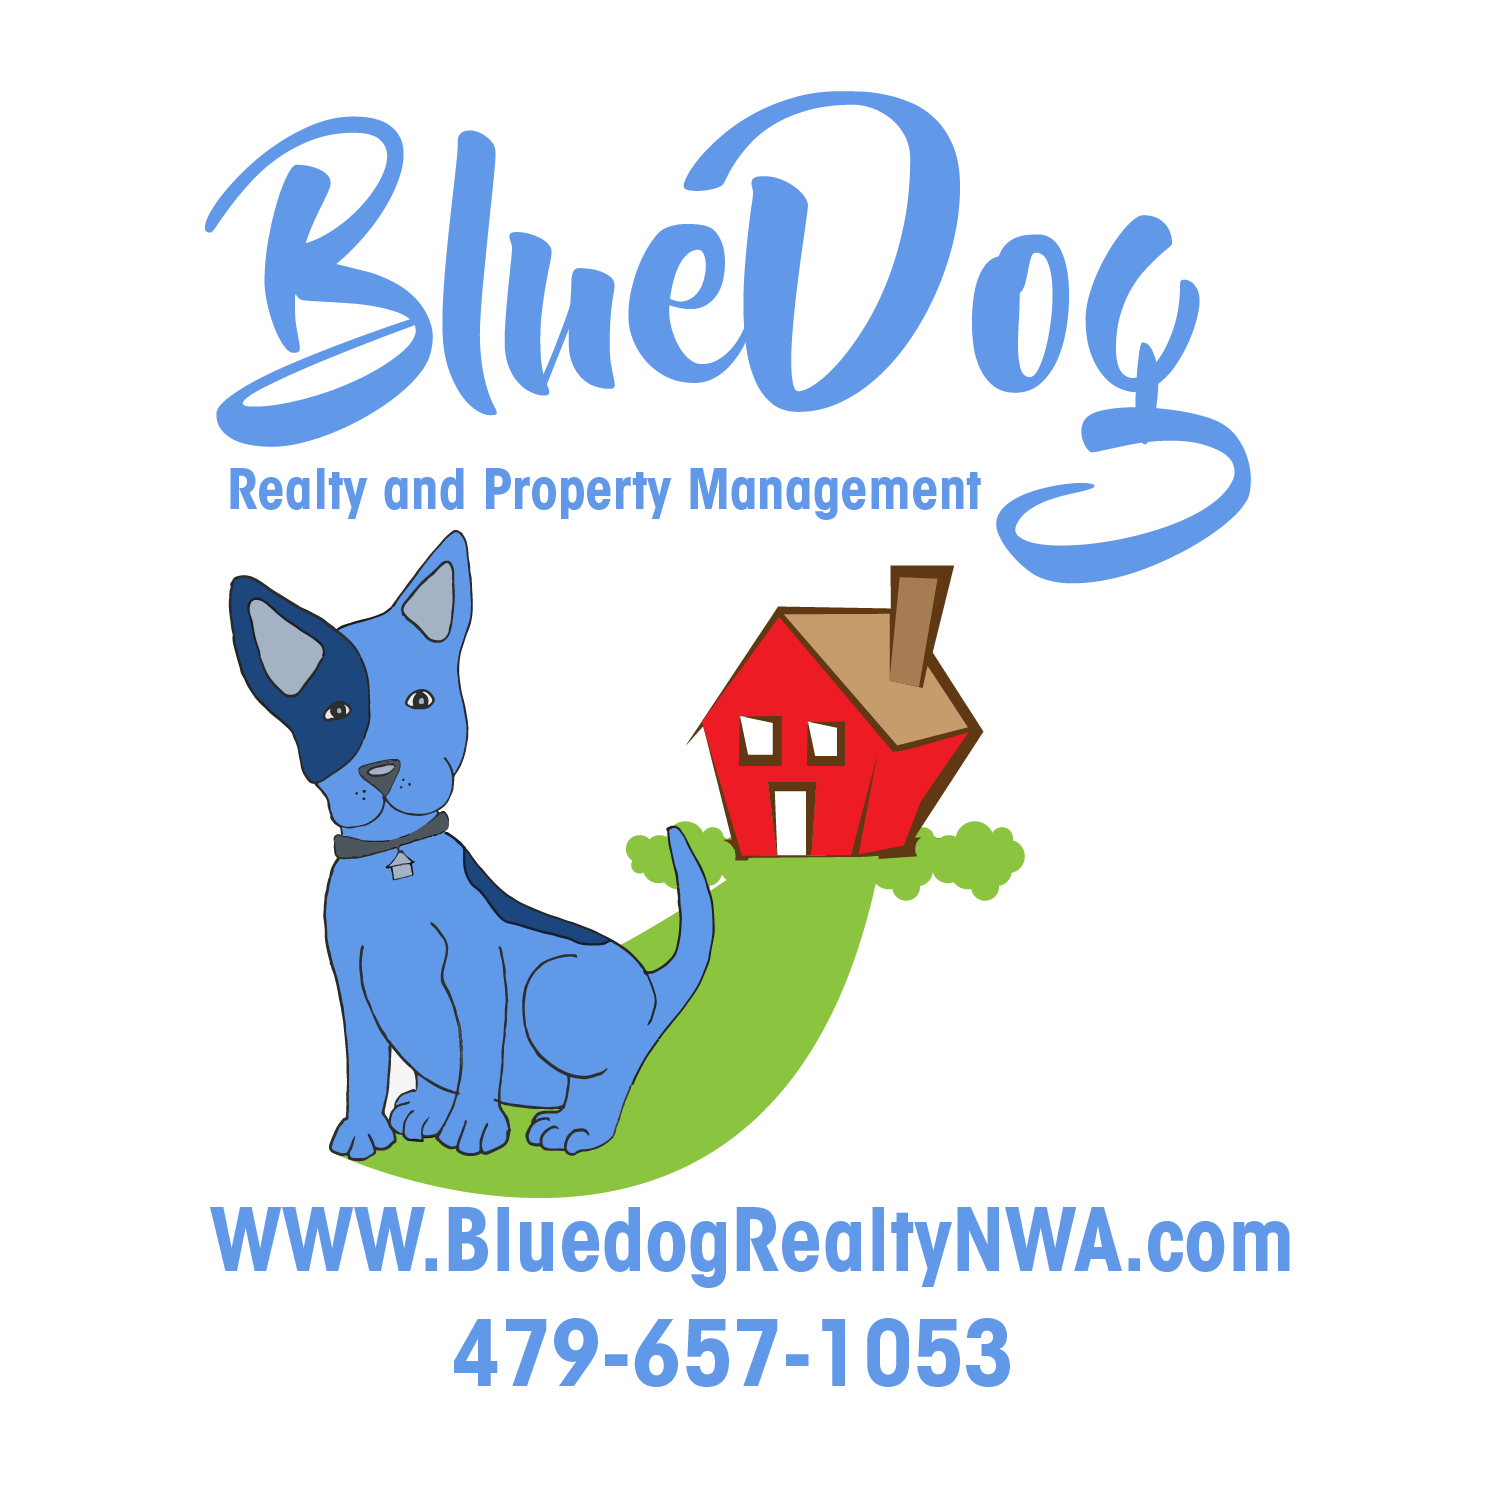 Blue Dog Realty and Property Management-01.png